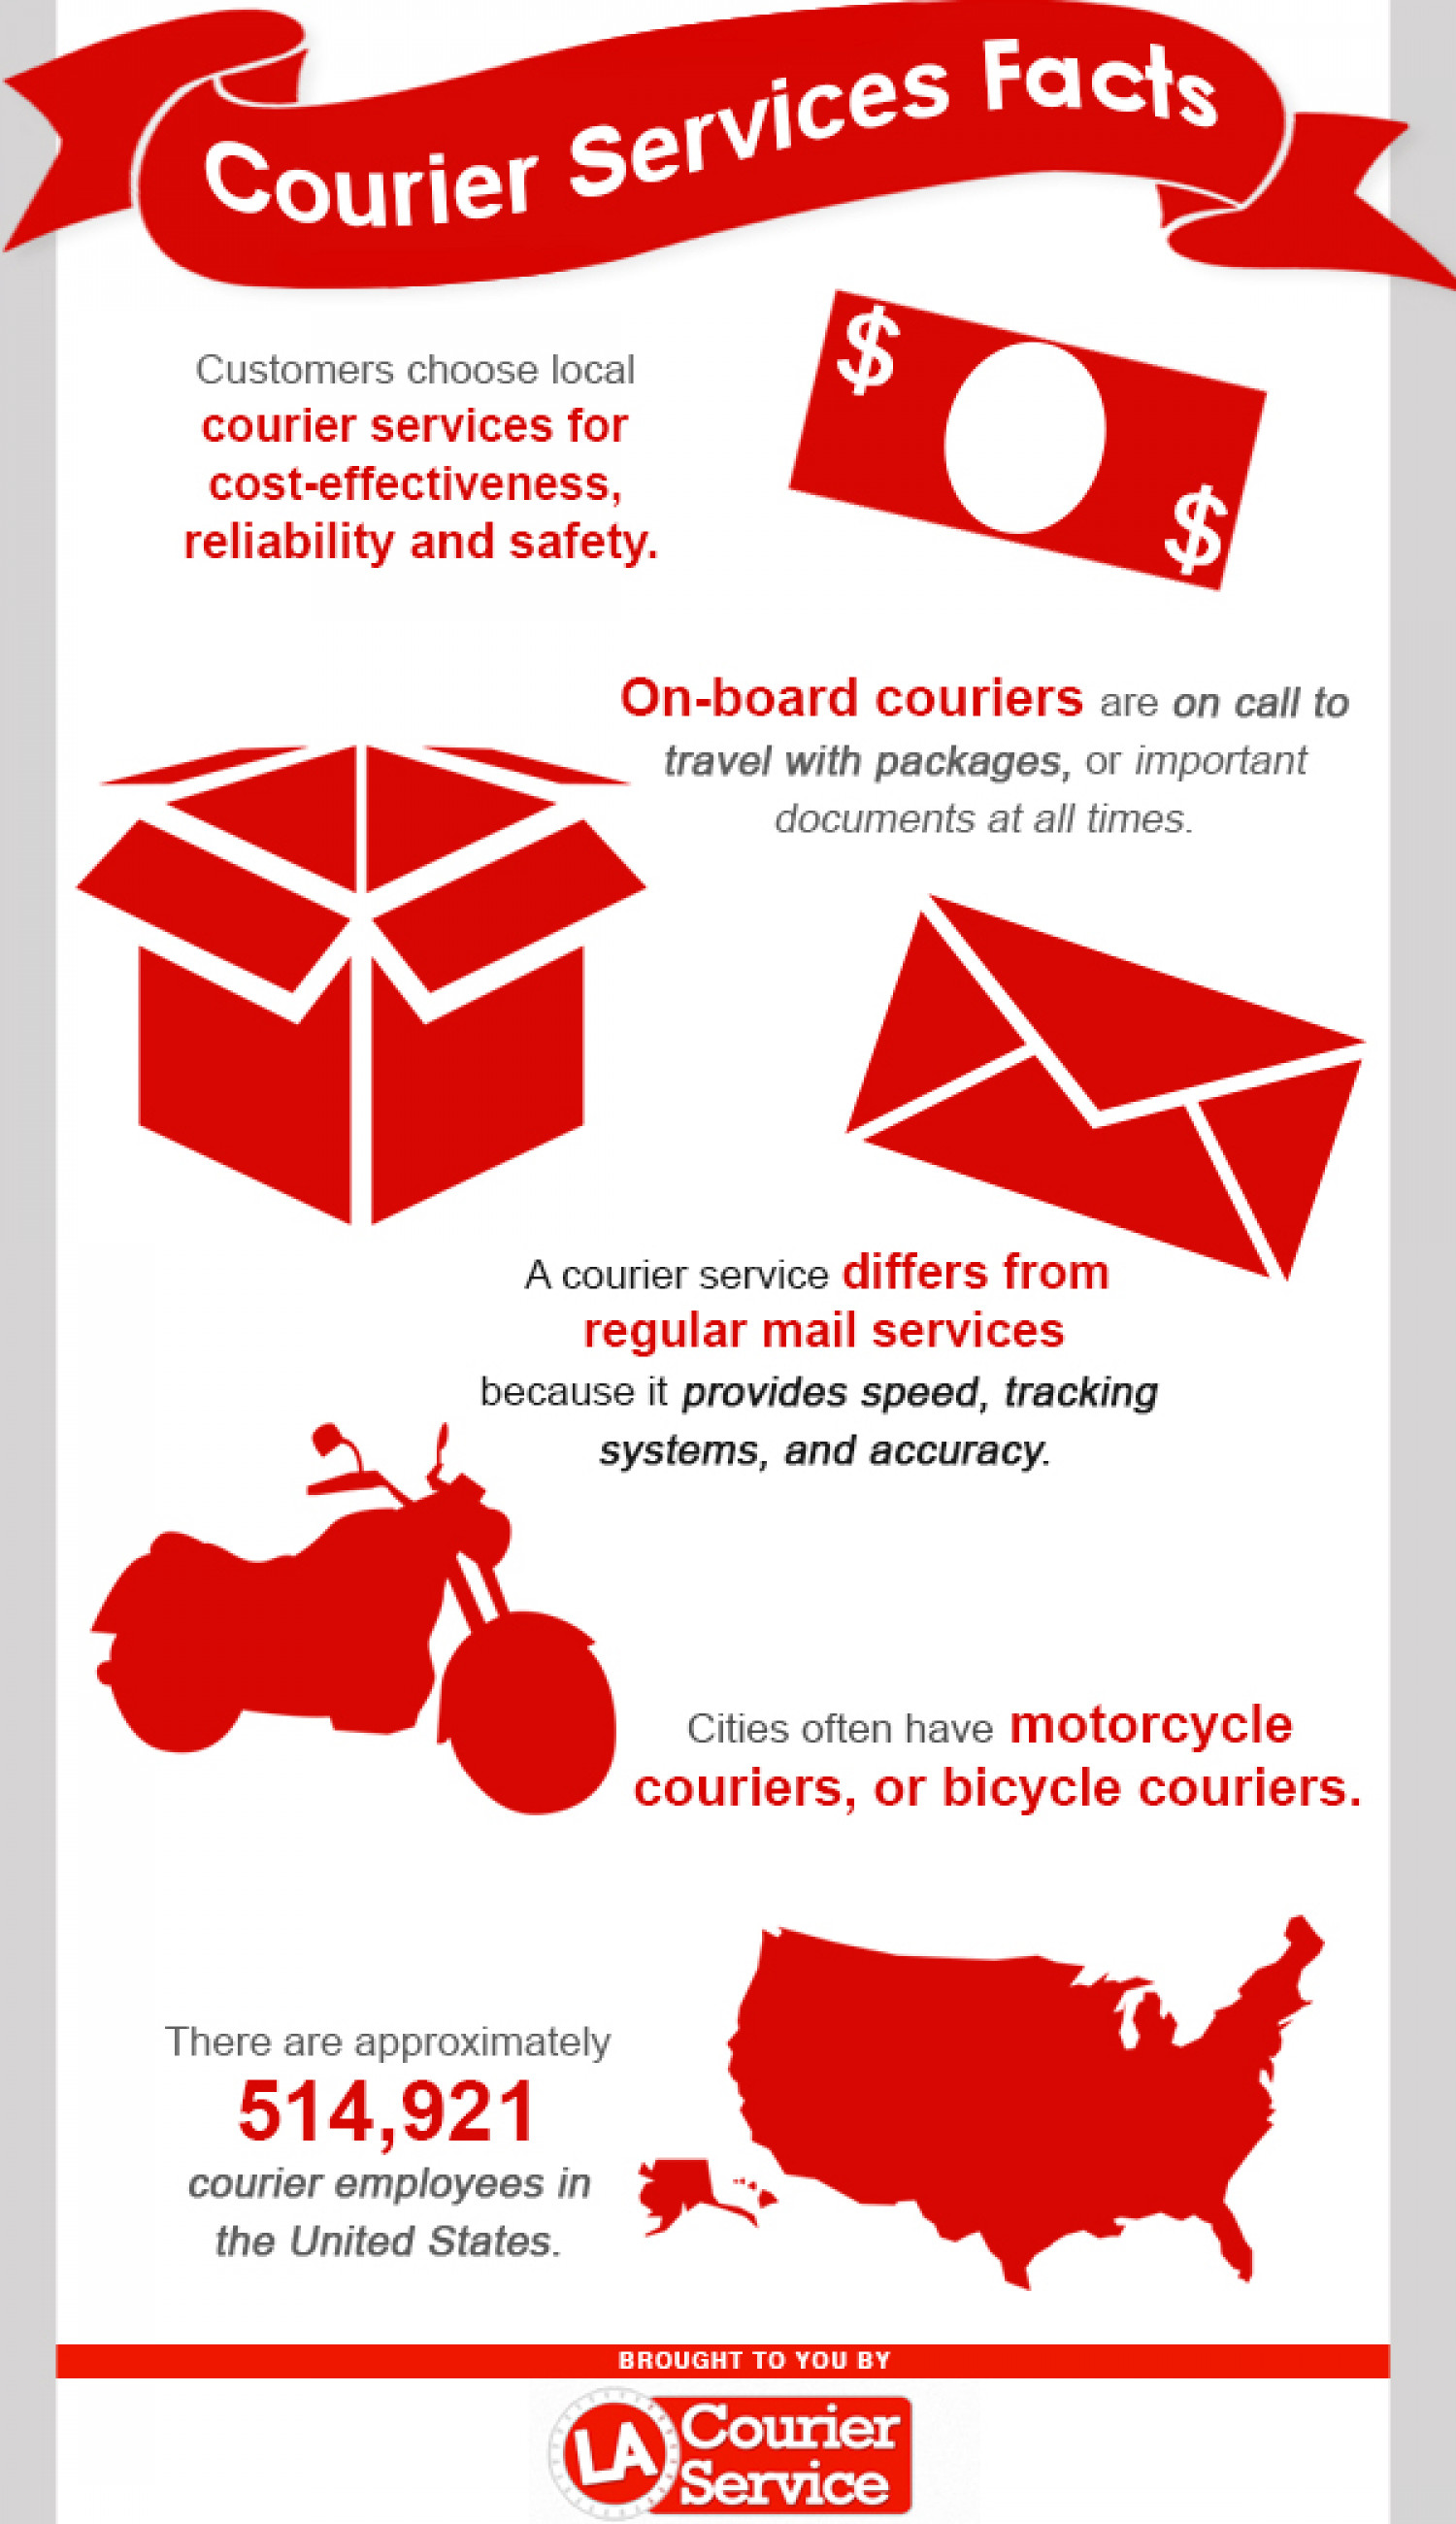 Courier Services Facts Infographic